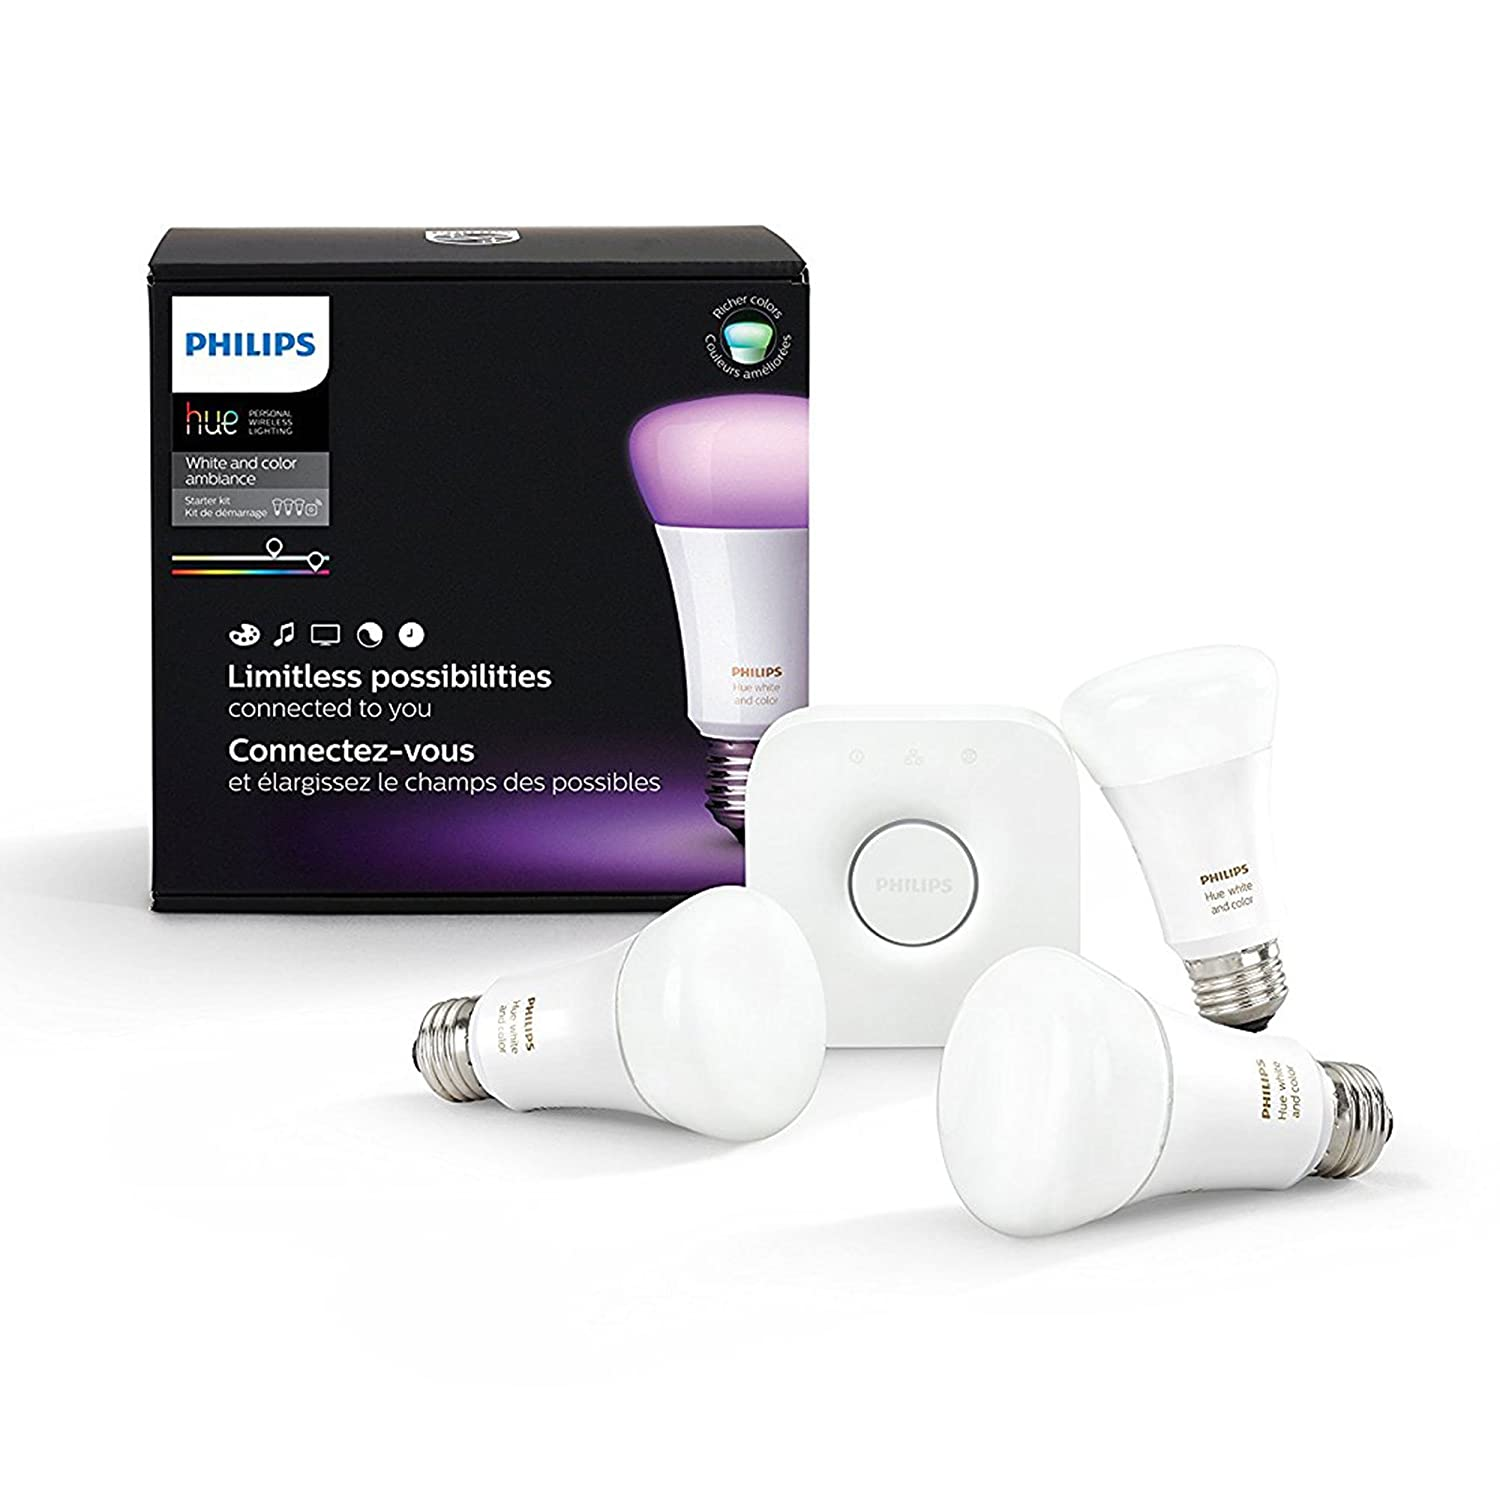 Philips Hue White and Color Ambiance A19 60W Equivalent LED Smart Bulb Starter Kit (3 A19 Bulbs and 1 Hub Compatible with Amazon Alexa Apple HomeKitand Google Assistant)